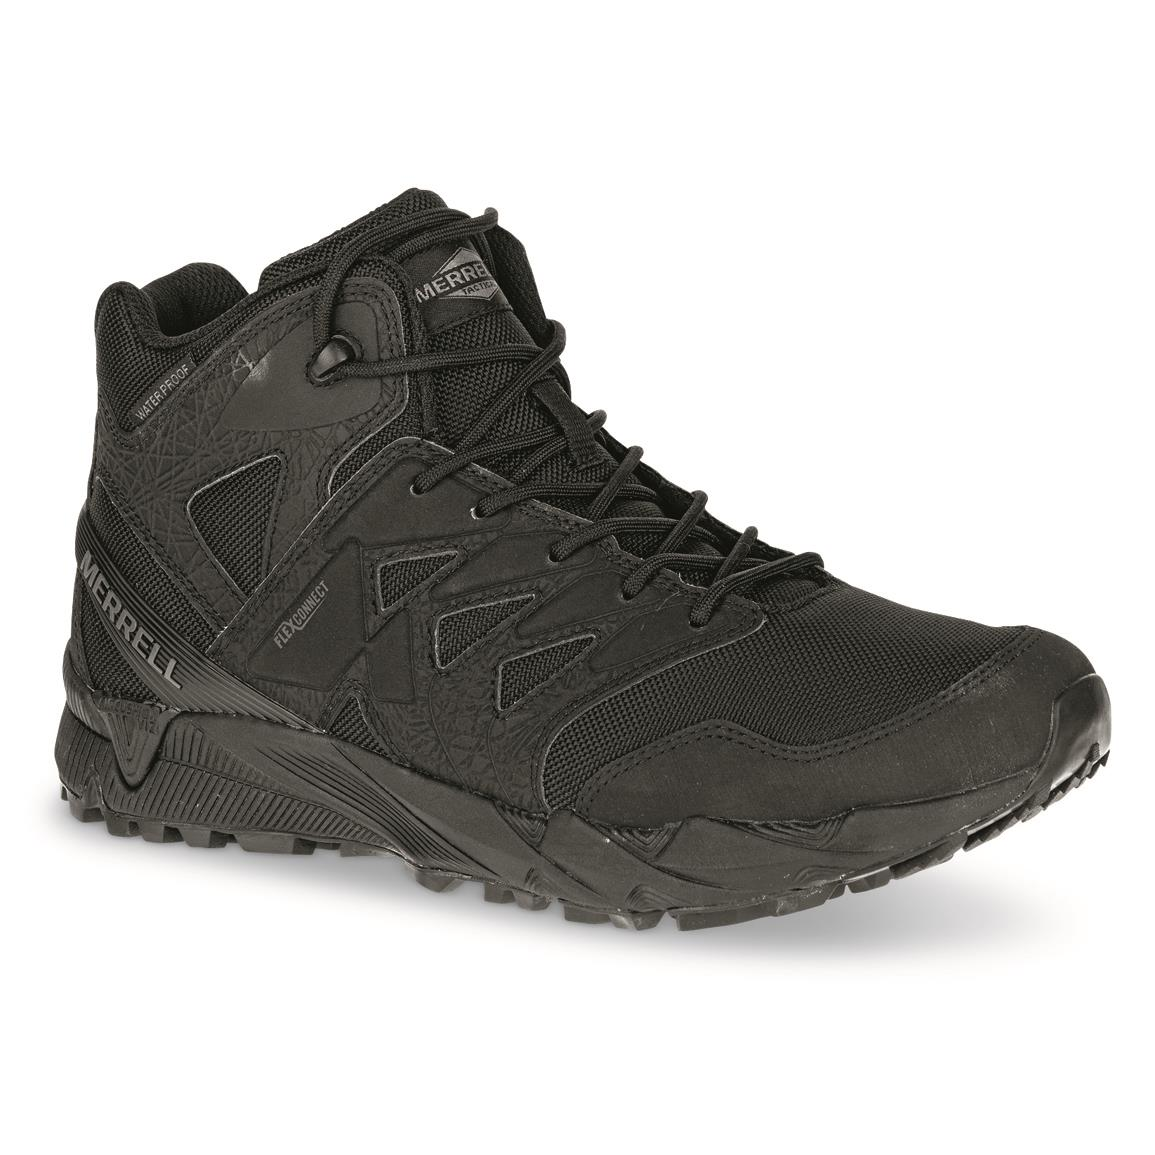 Merrell Men's Agility Peak Mid Waterproof Tactical Boots, Black